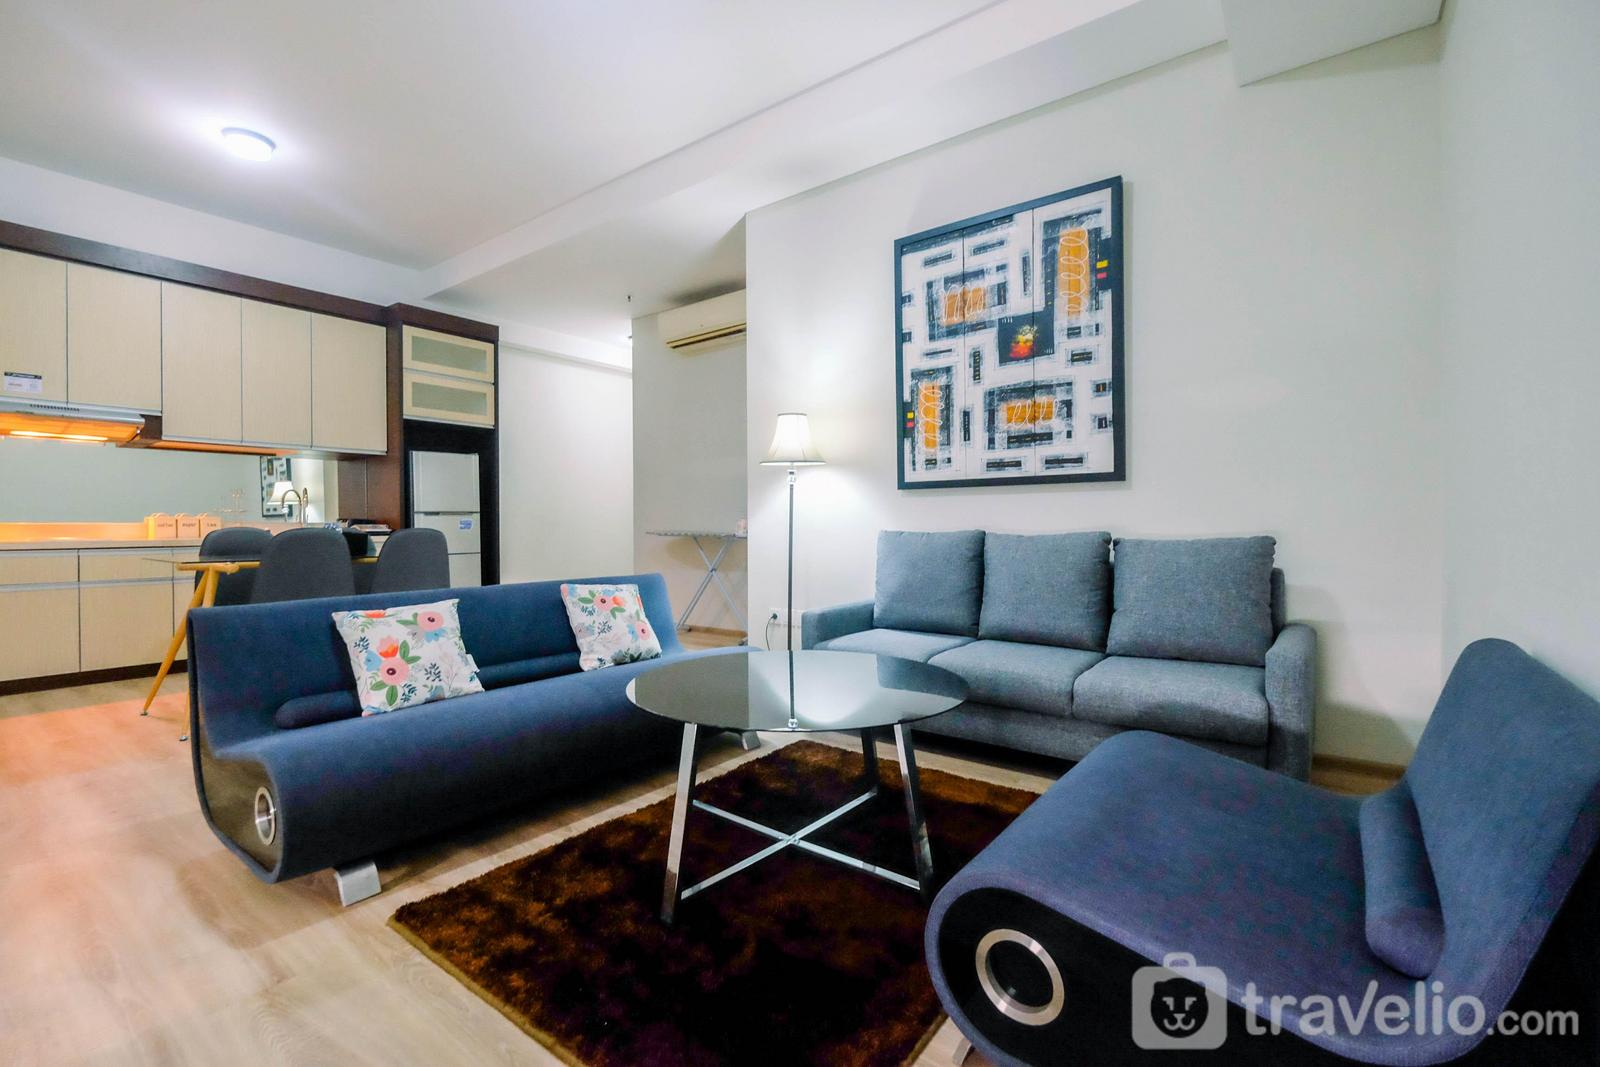 Apartemen One Park Residence - Private and Strategic 2BR Apartment 1Park Residence By Travelio